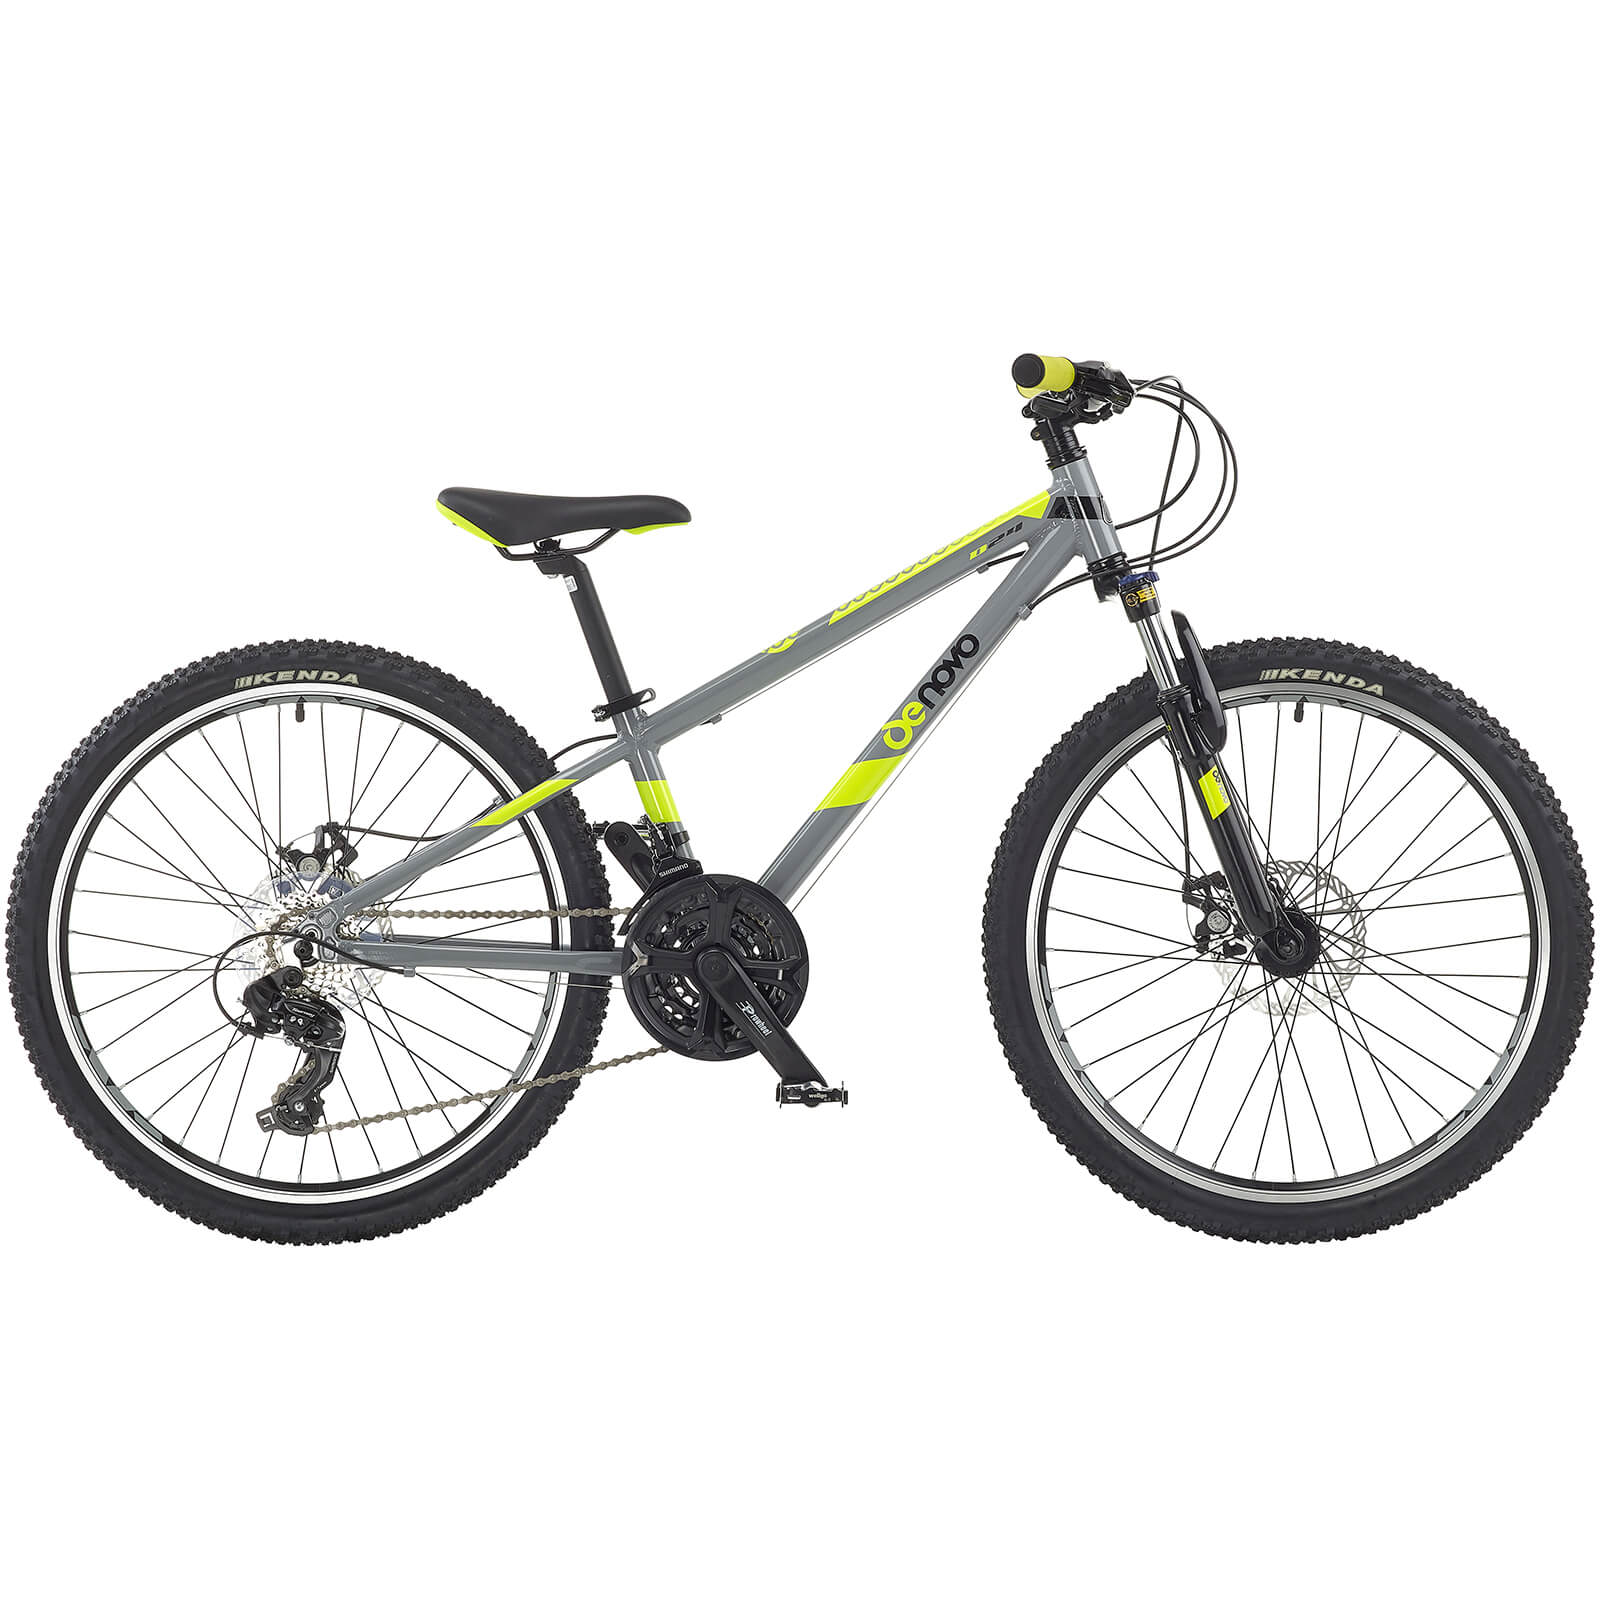 "Denovo Boys Alloy Bike - 24"" Wheel"